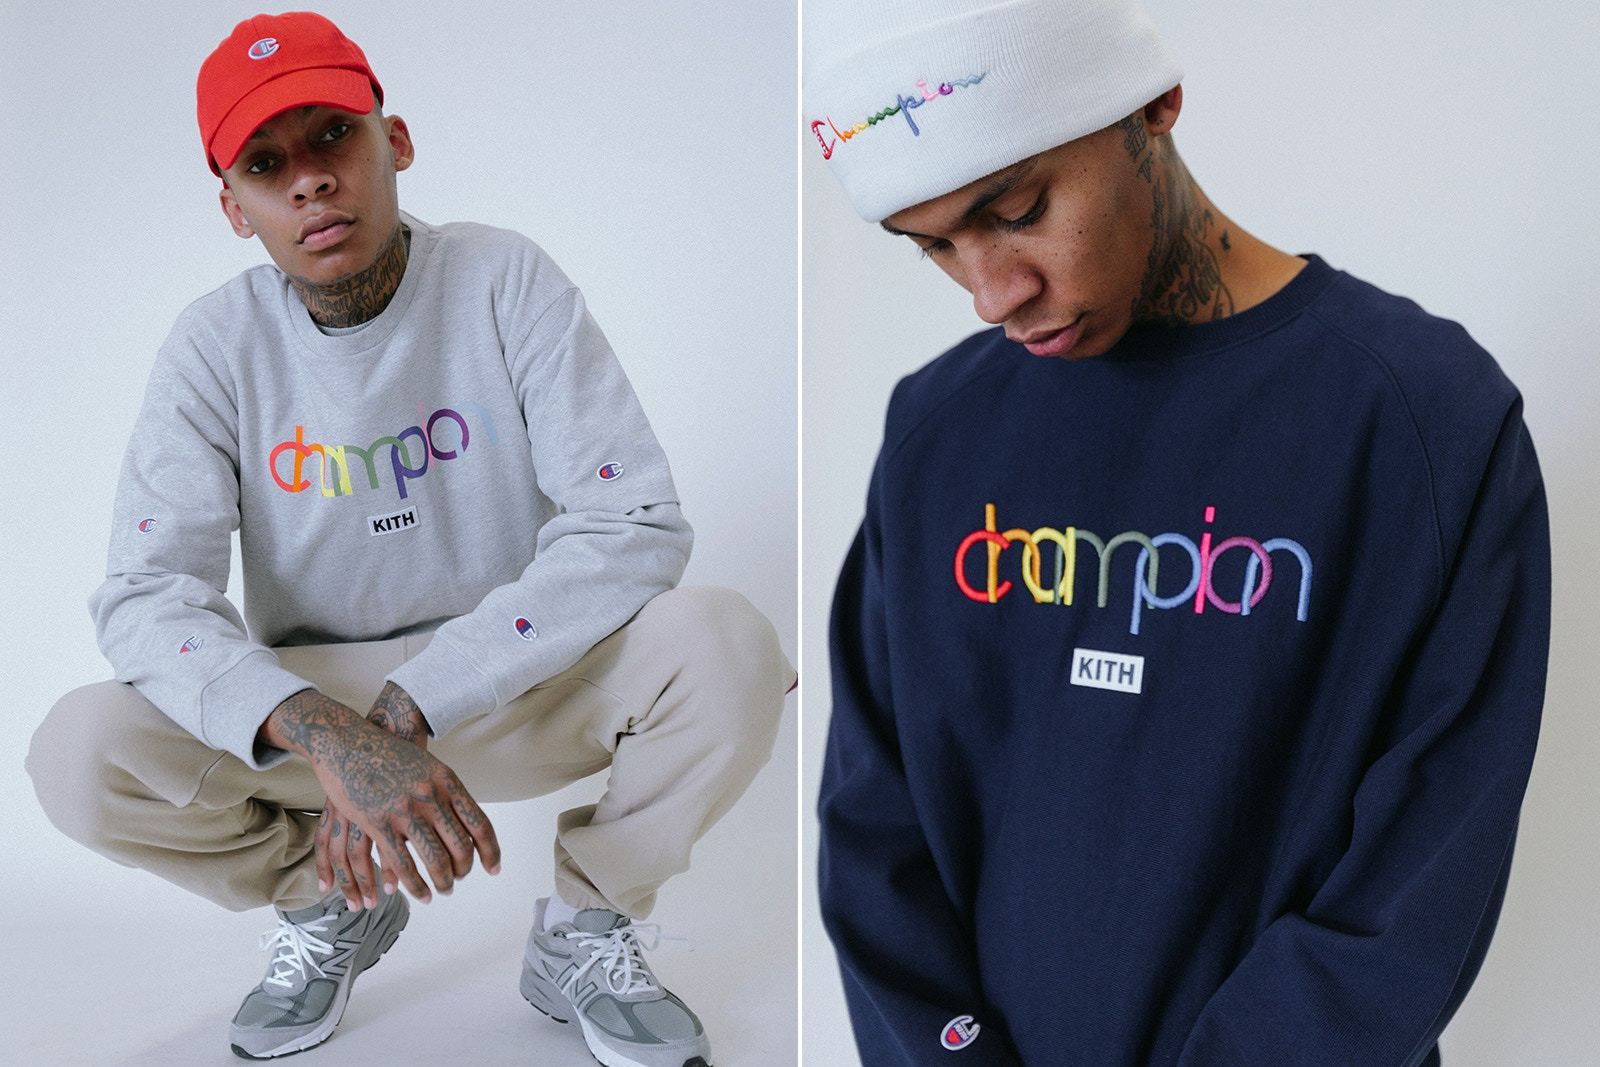 KITH rielabora il logo di Champion per una nuova capsule collection | Collater.al 7